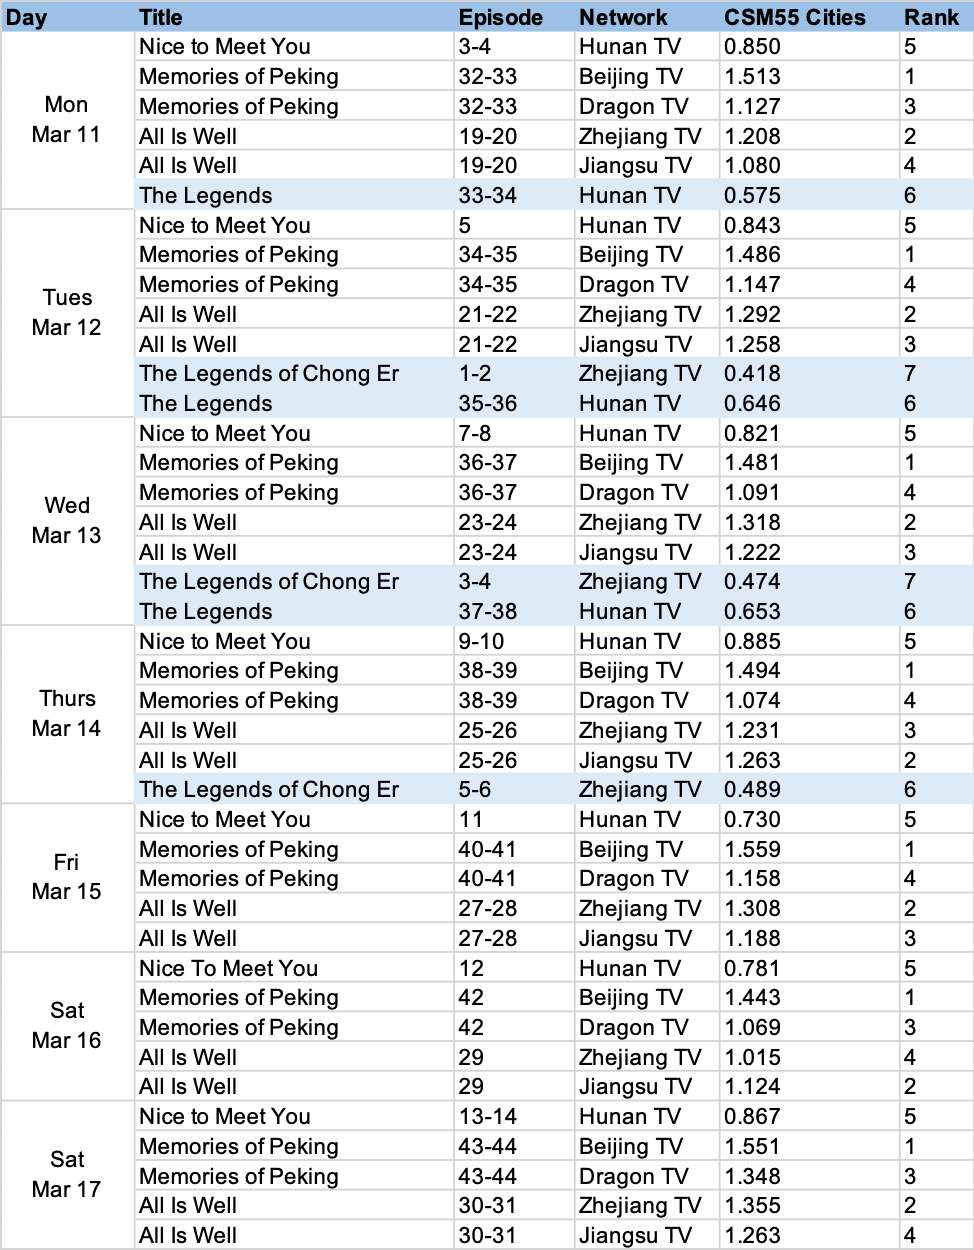 csm55 cities